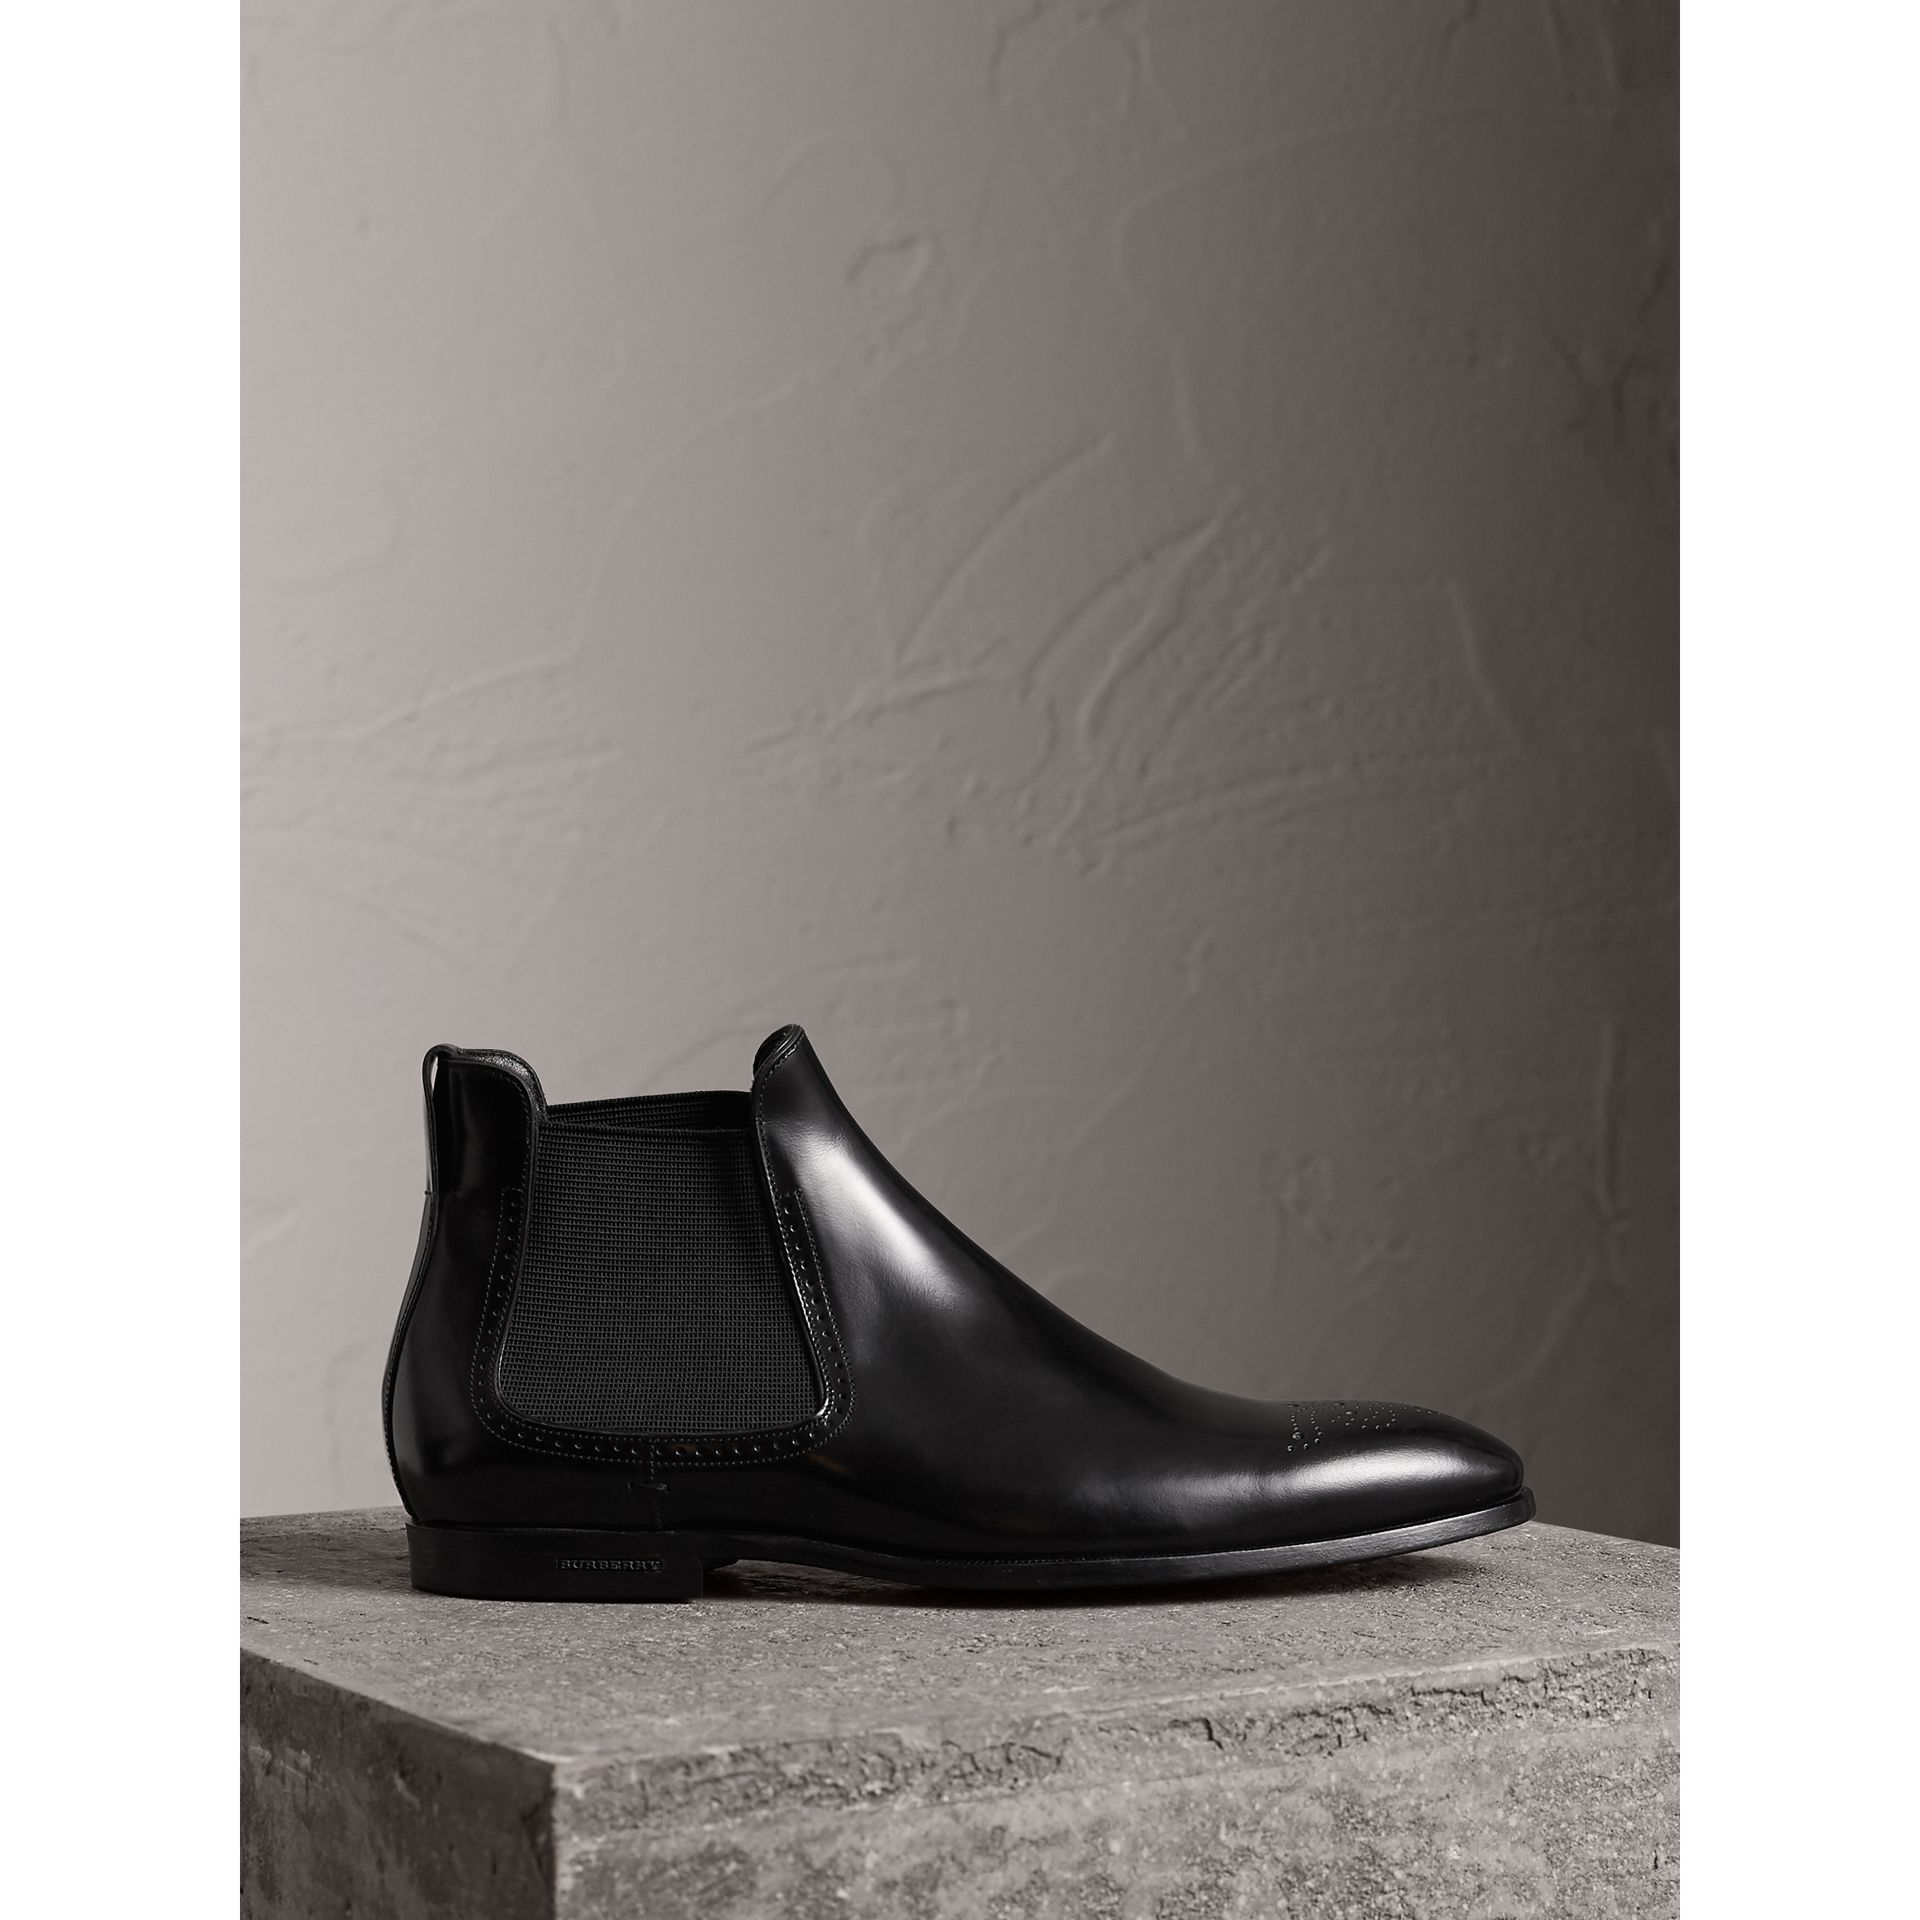 Bottines Chelsea en cuir ornées de perforations (Noir) - Homme | Burberry - photo de la galerie 1